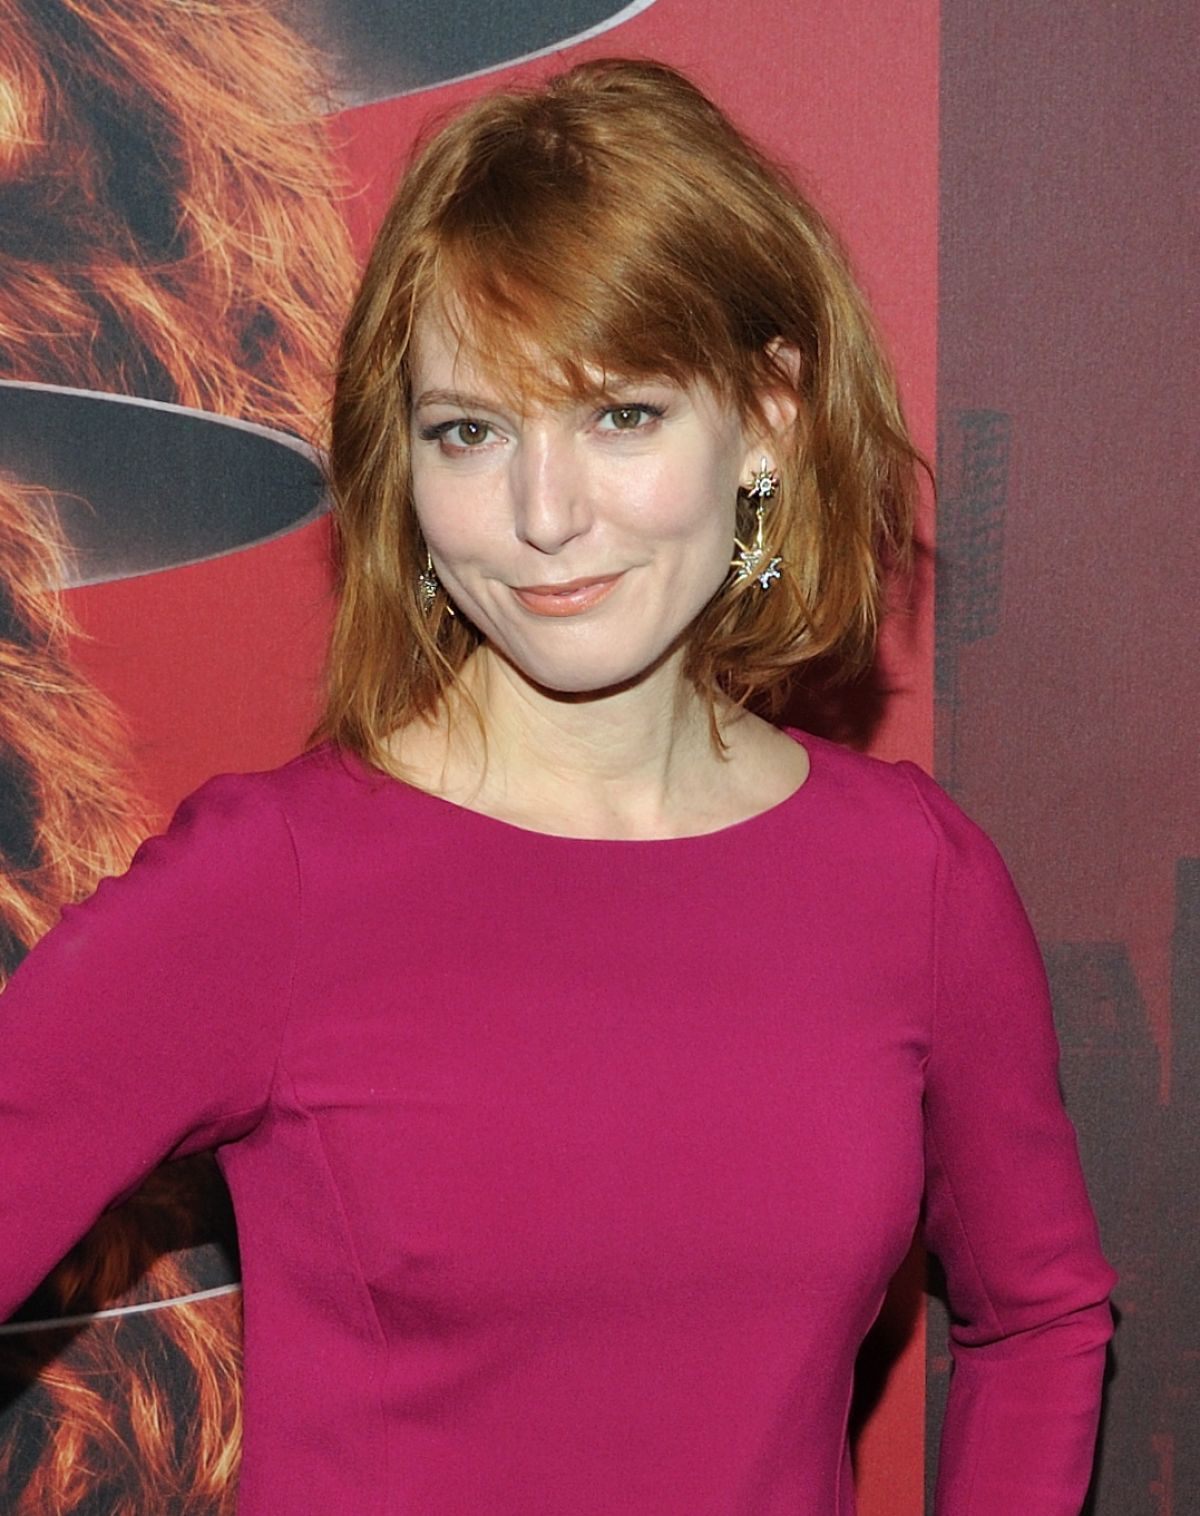 ALICIA WITT at Russian Doll Season 1 Premiere in New York ...